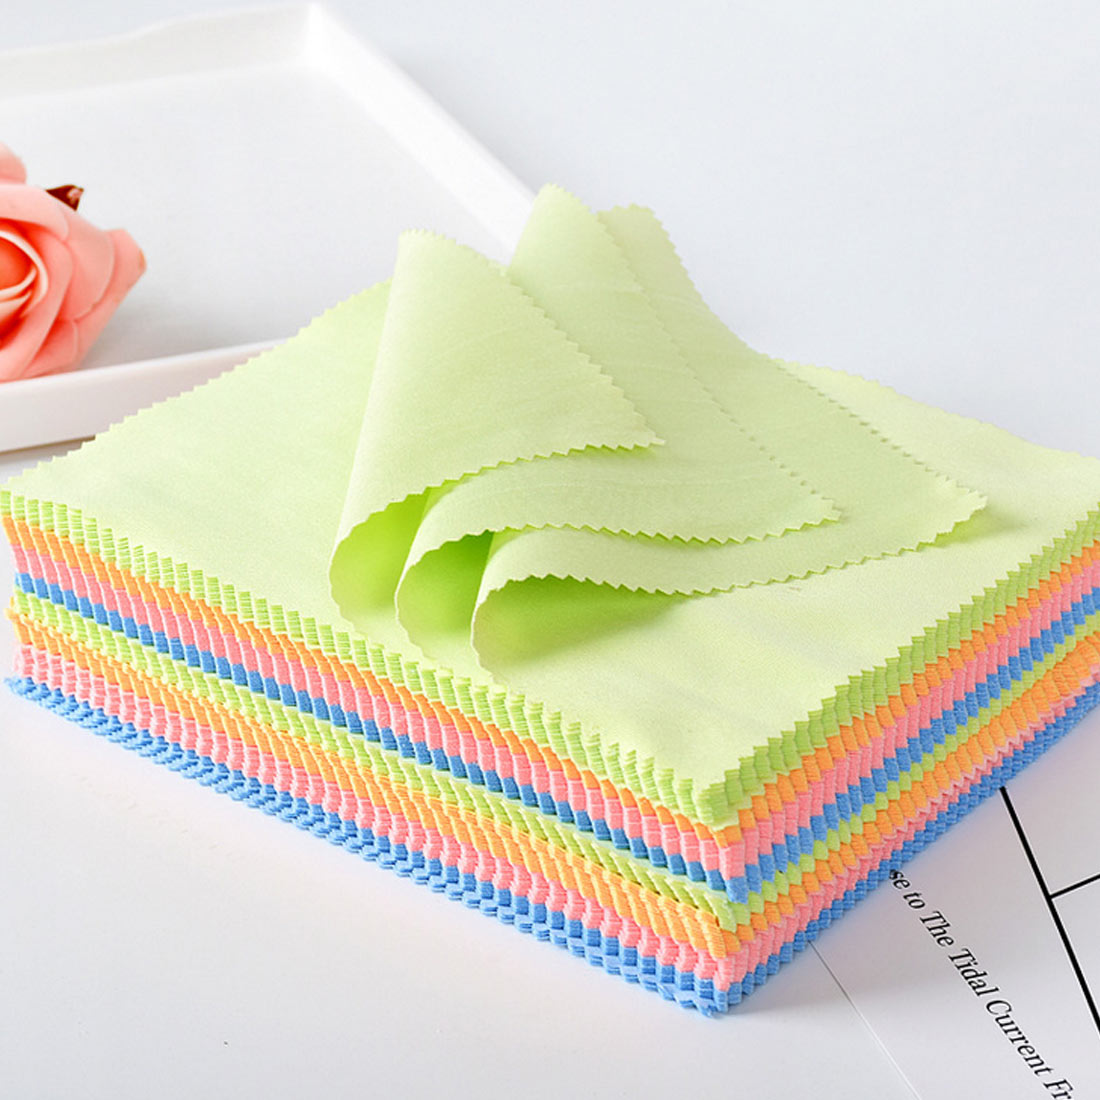 Wipe Silver Jewelry Polishing Cloth Silver Ornaments Cloth Candy Color  Cleaning Cloth Useful Jewelry Tools